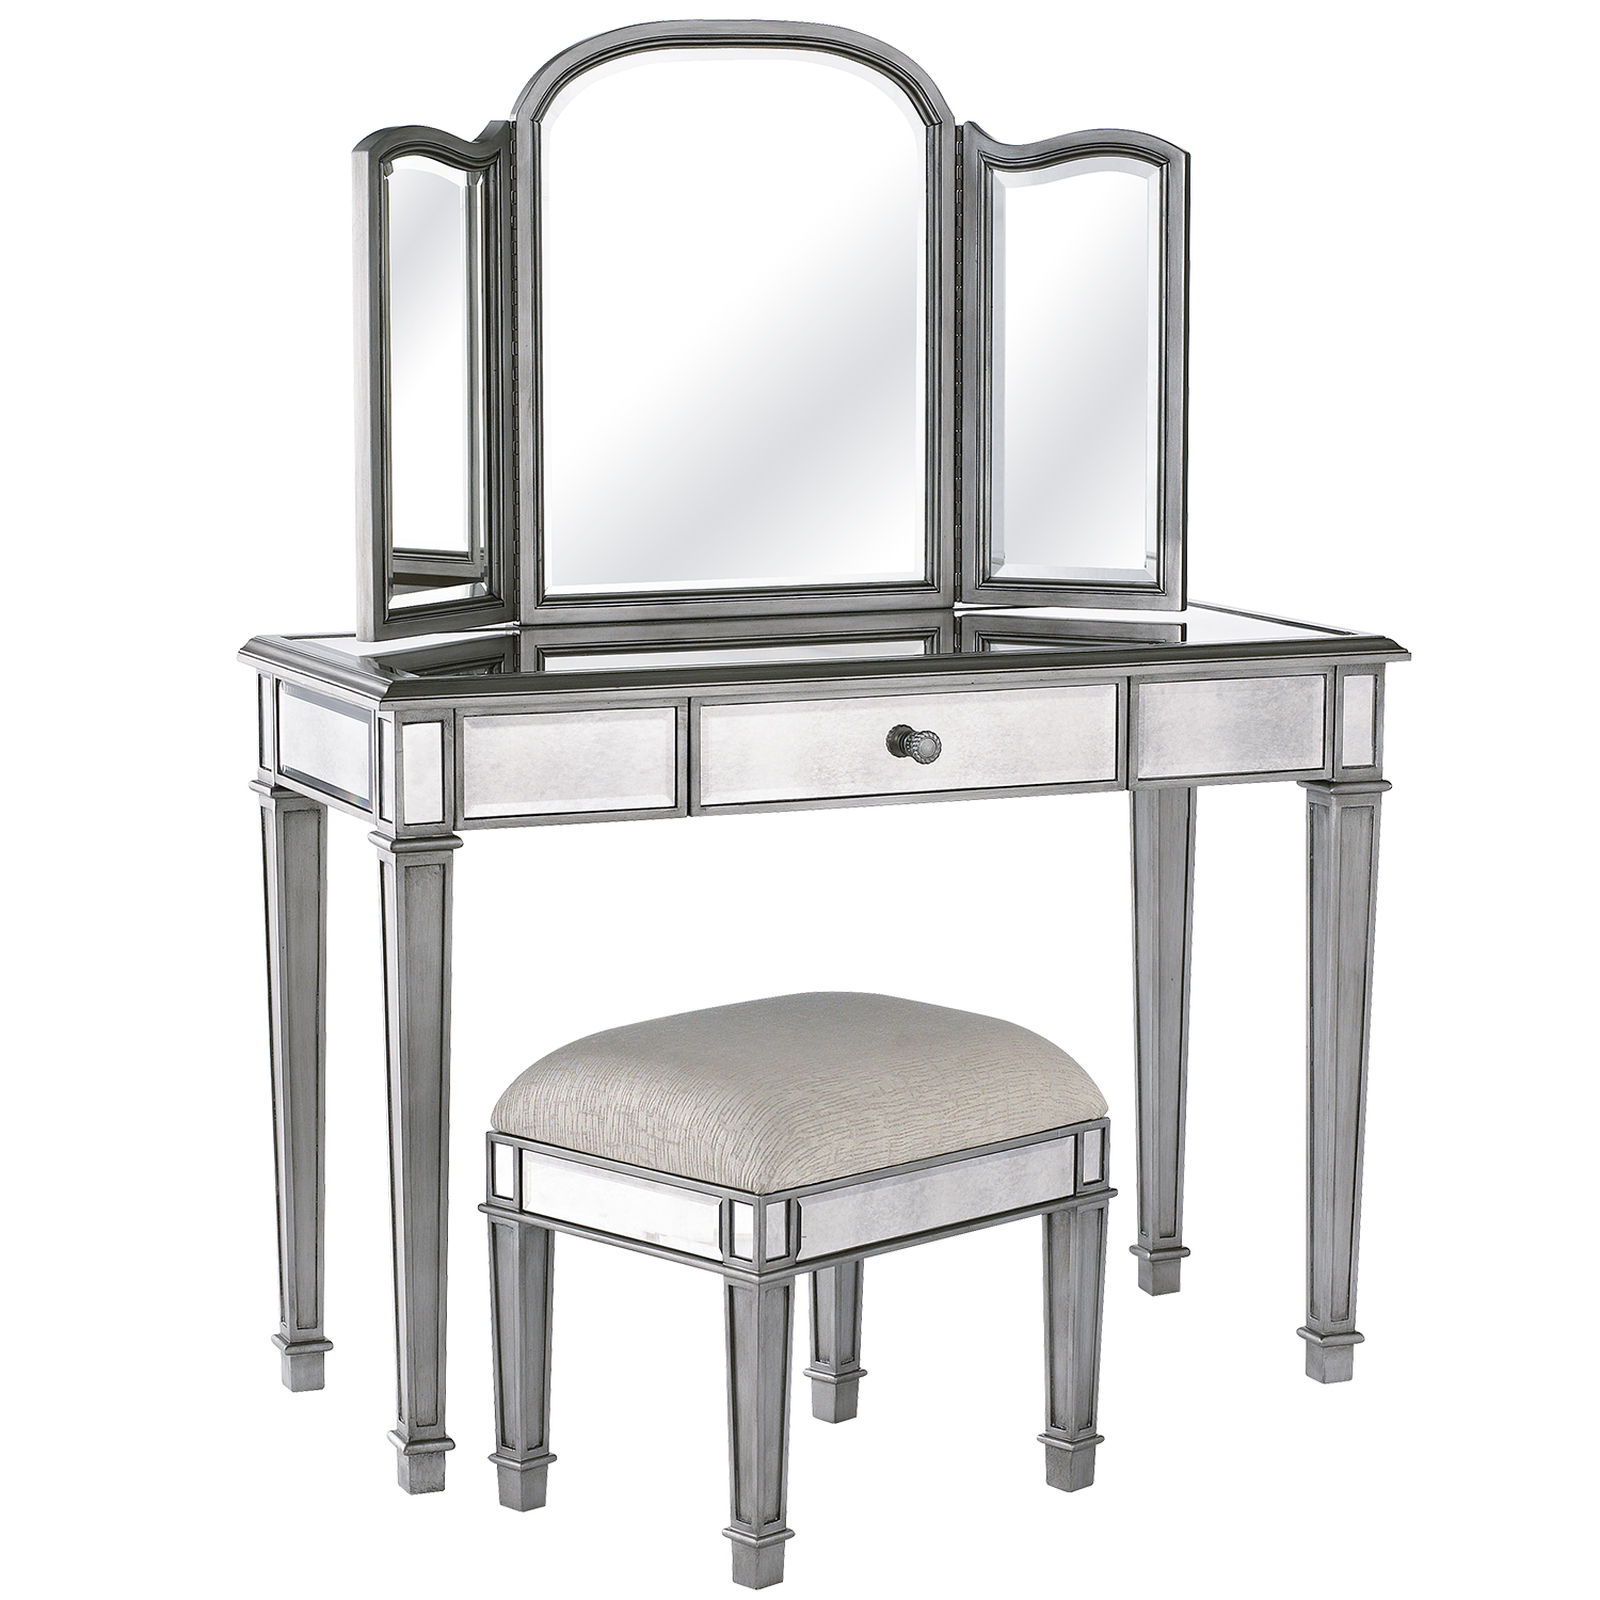 Bedroom Makeup Vanity with Lights | Makeup Vanity with Lights for Sale | Mirrored Vanity Set